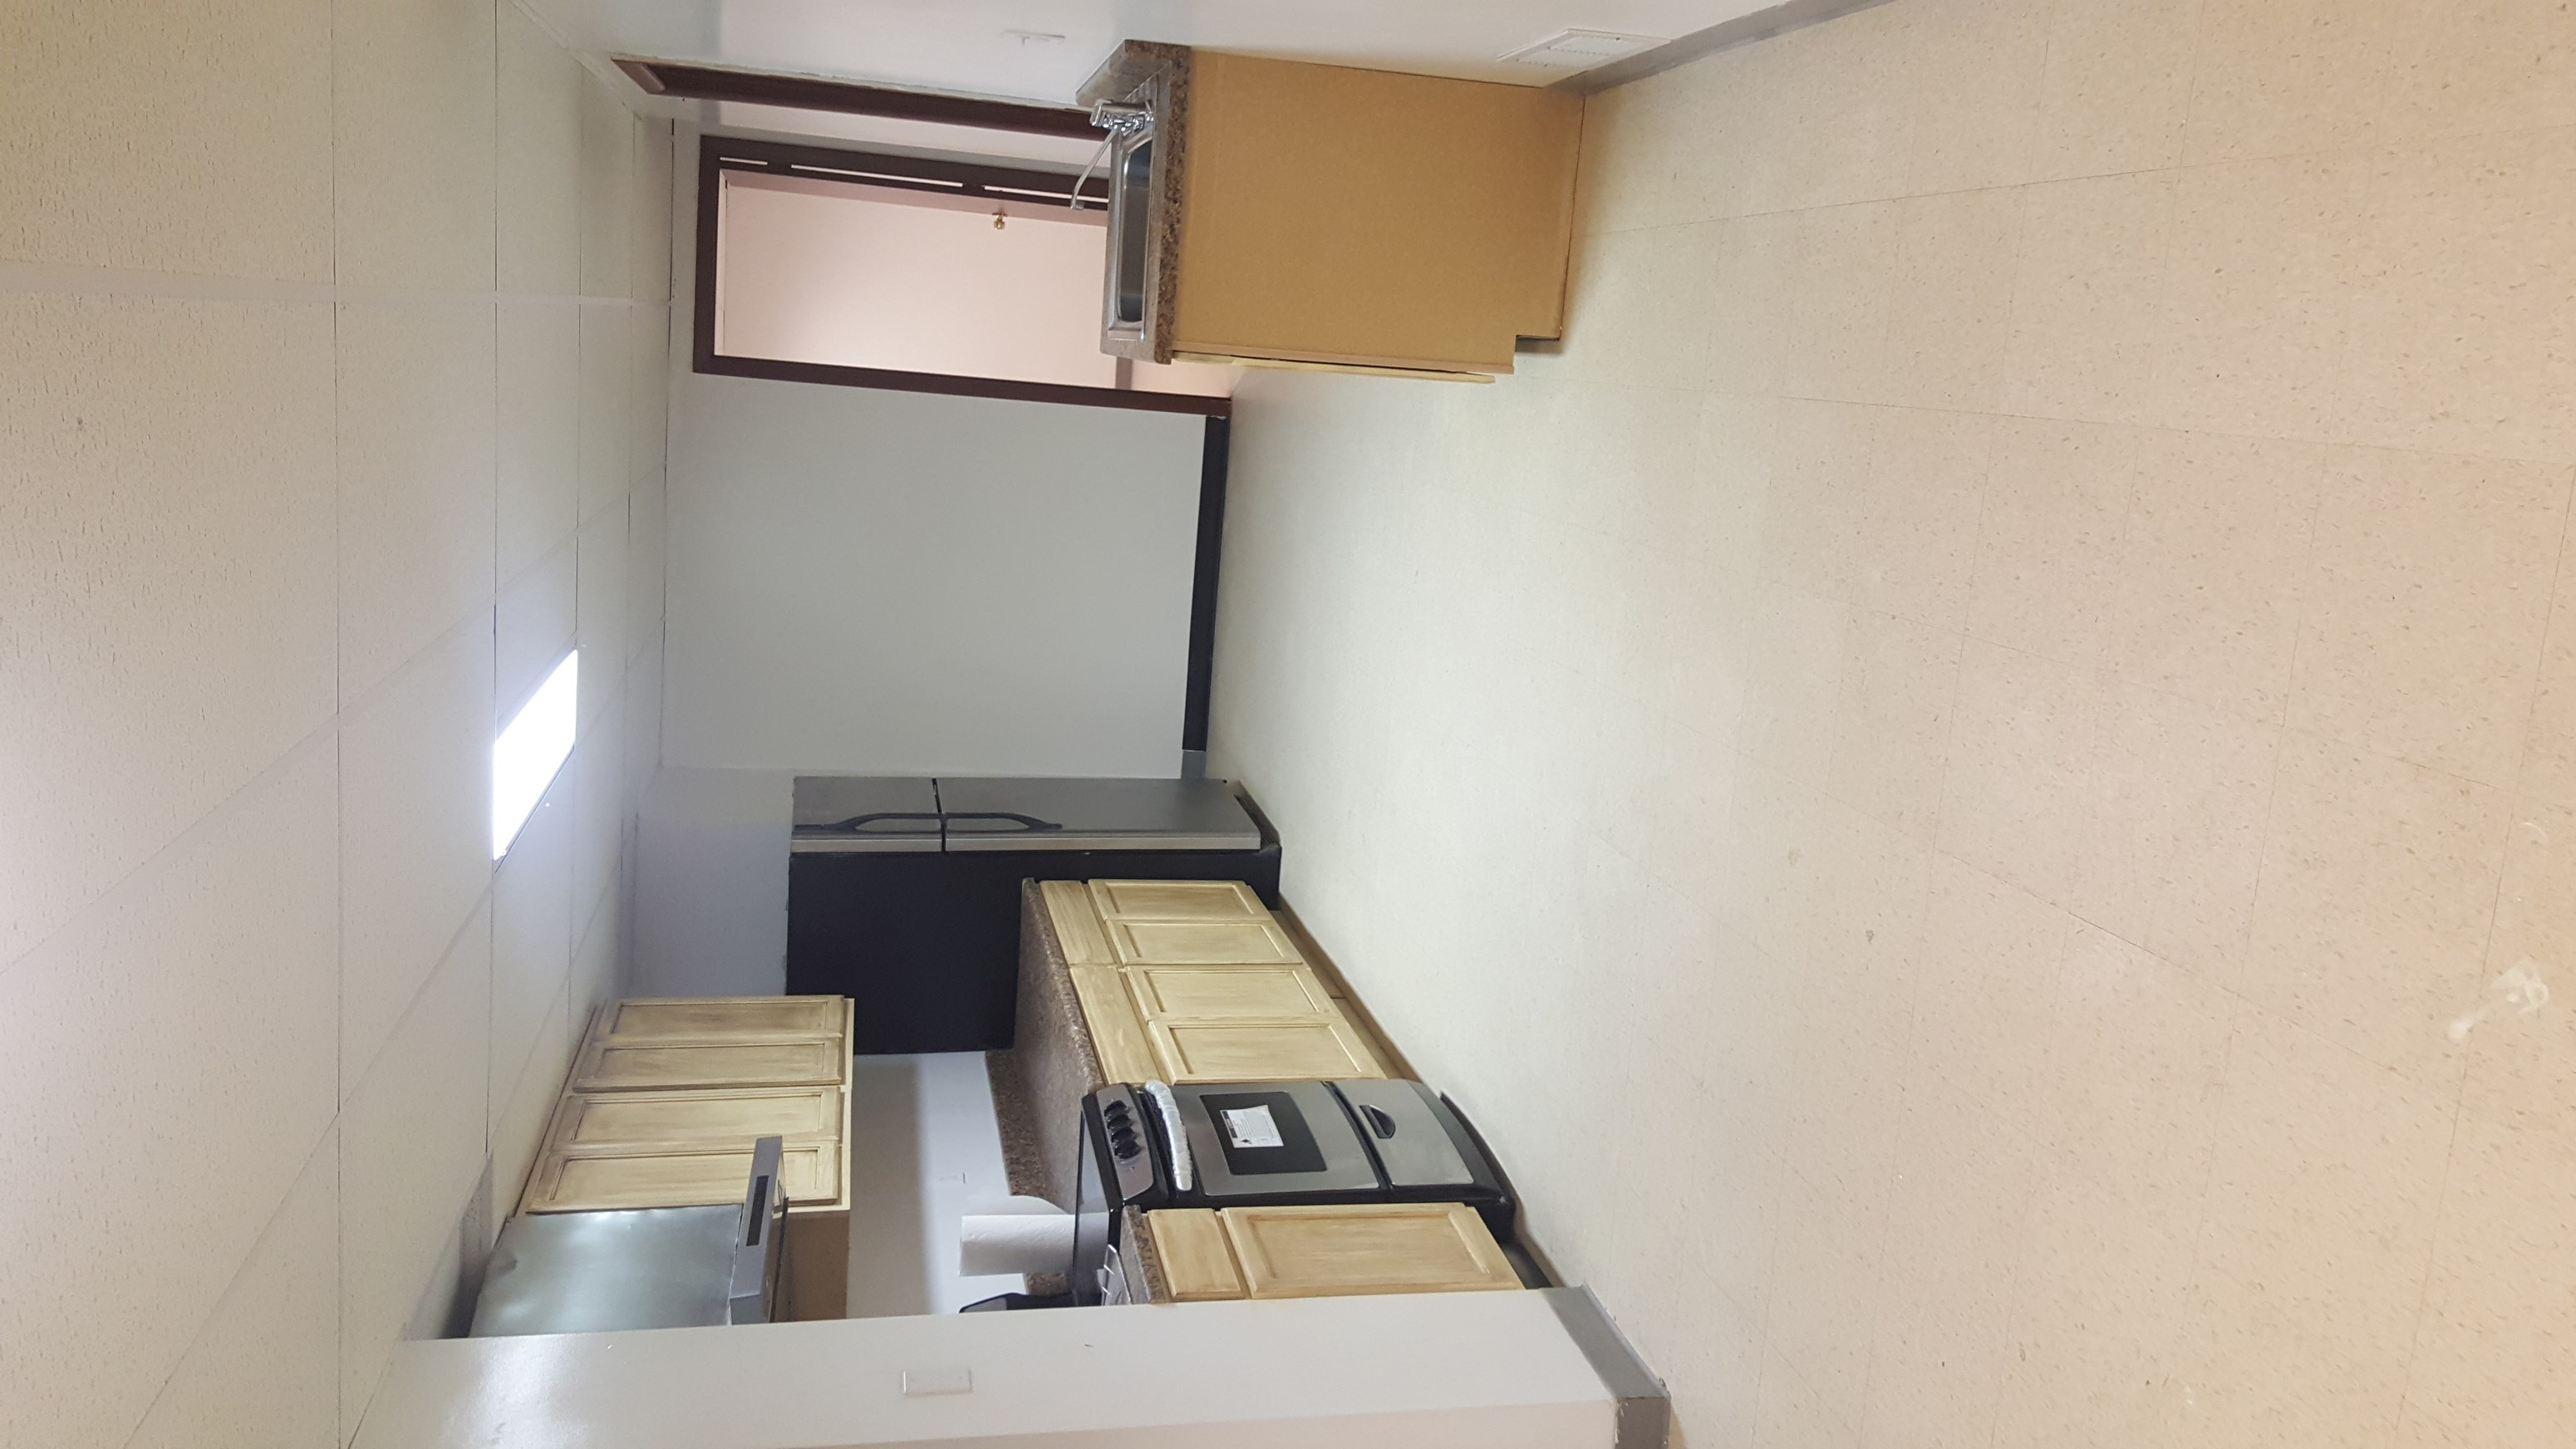 Housing For Student Near Maryland General Hospital In Baltimore - Basement apartments for rent in pg maryland